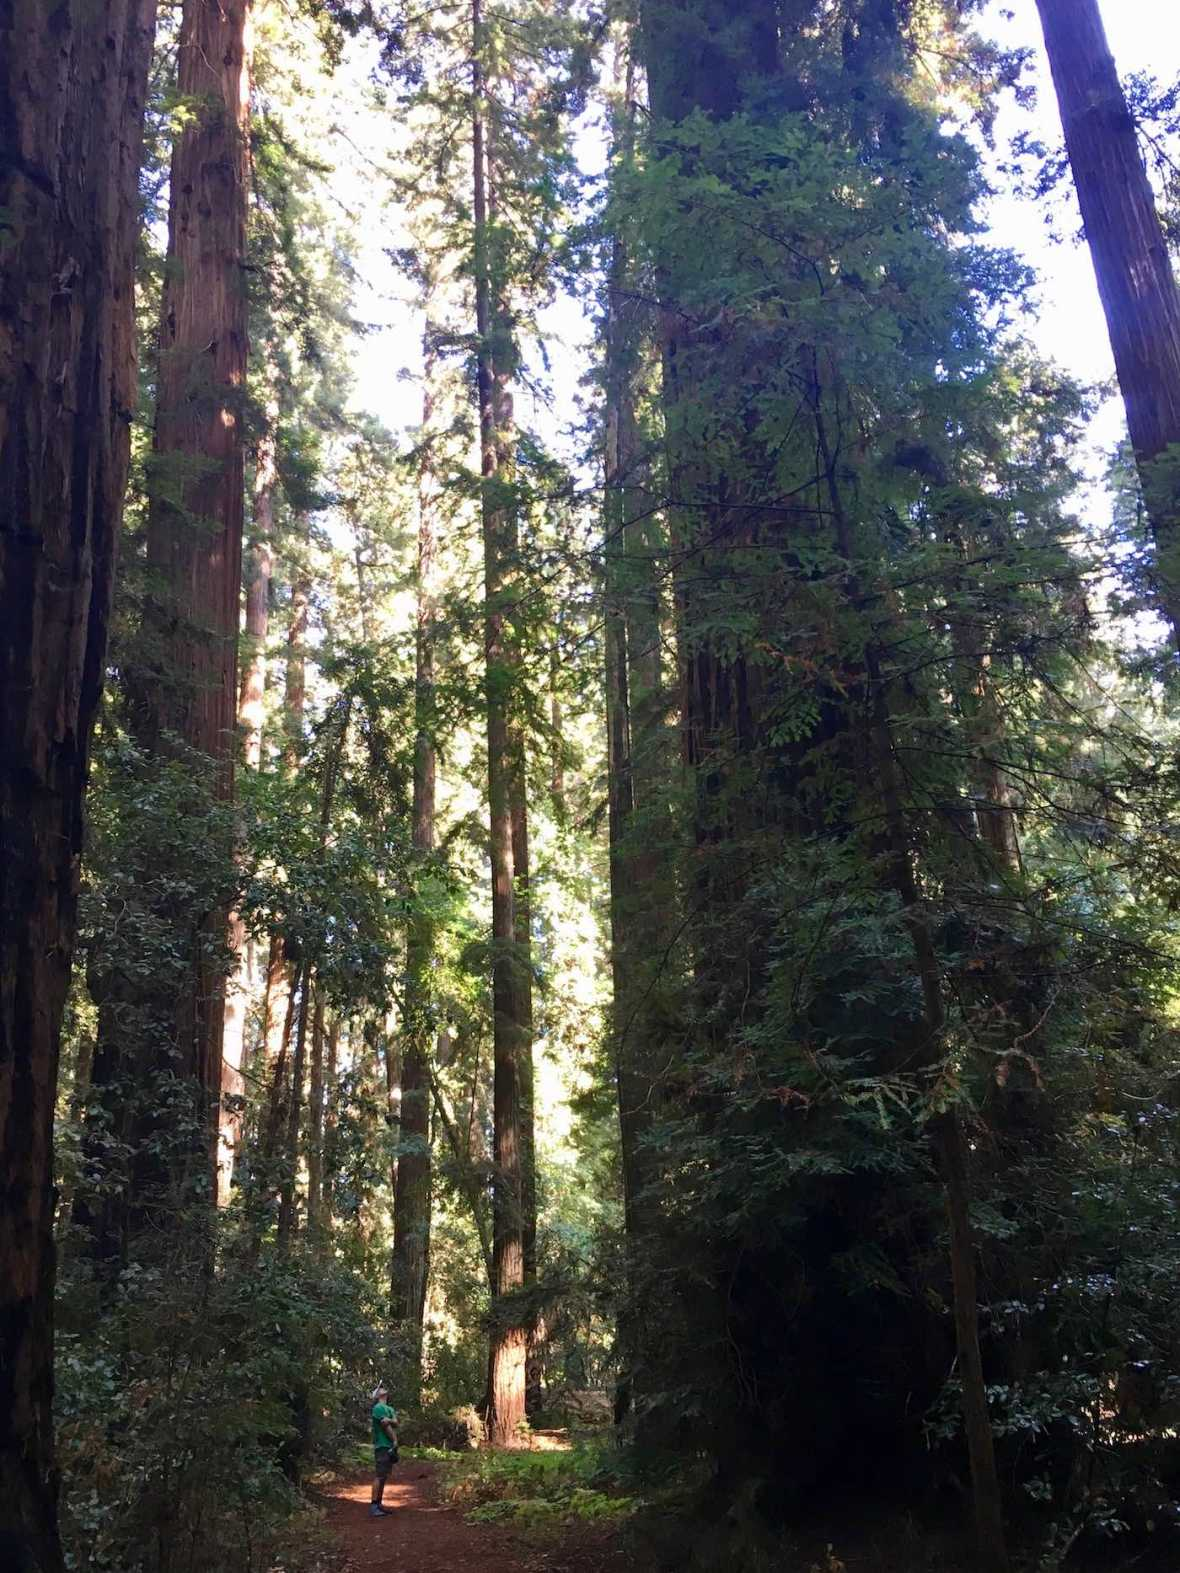 Giant redwoods in Big Hendy Grove virgin forest in California's Hendy Woods State Park